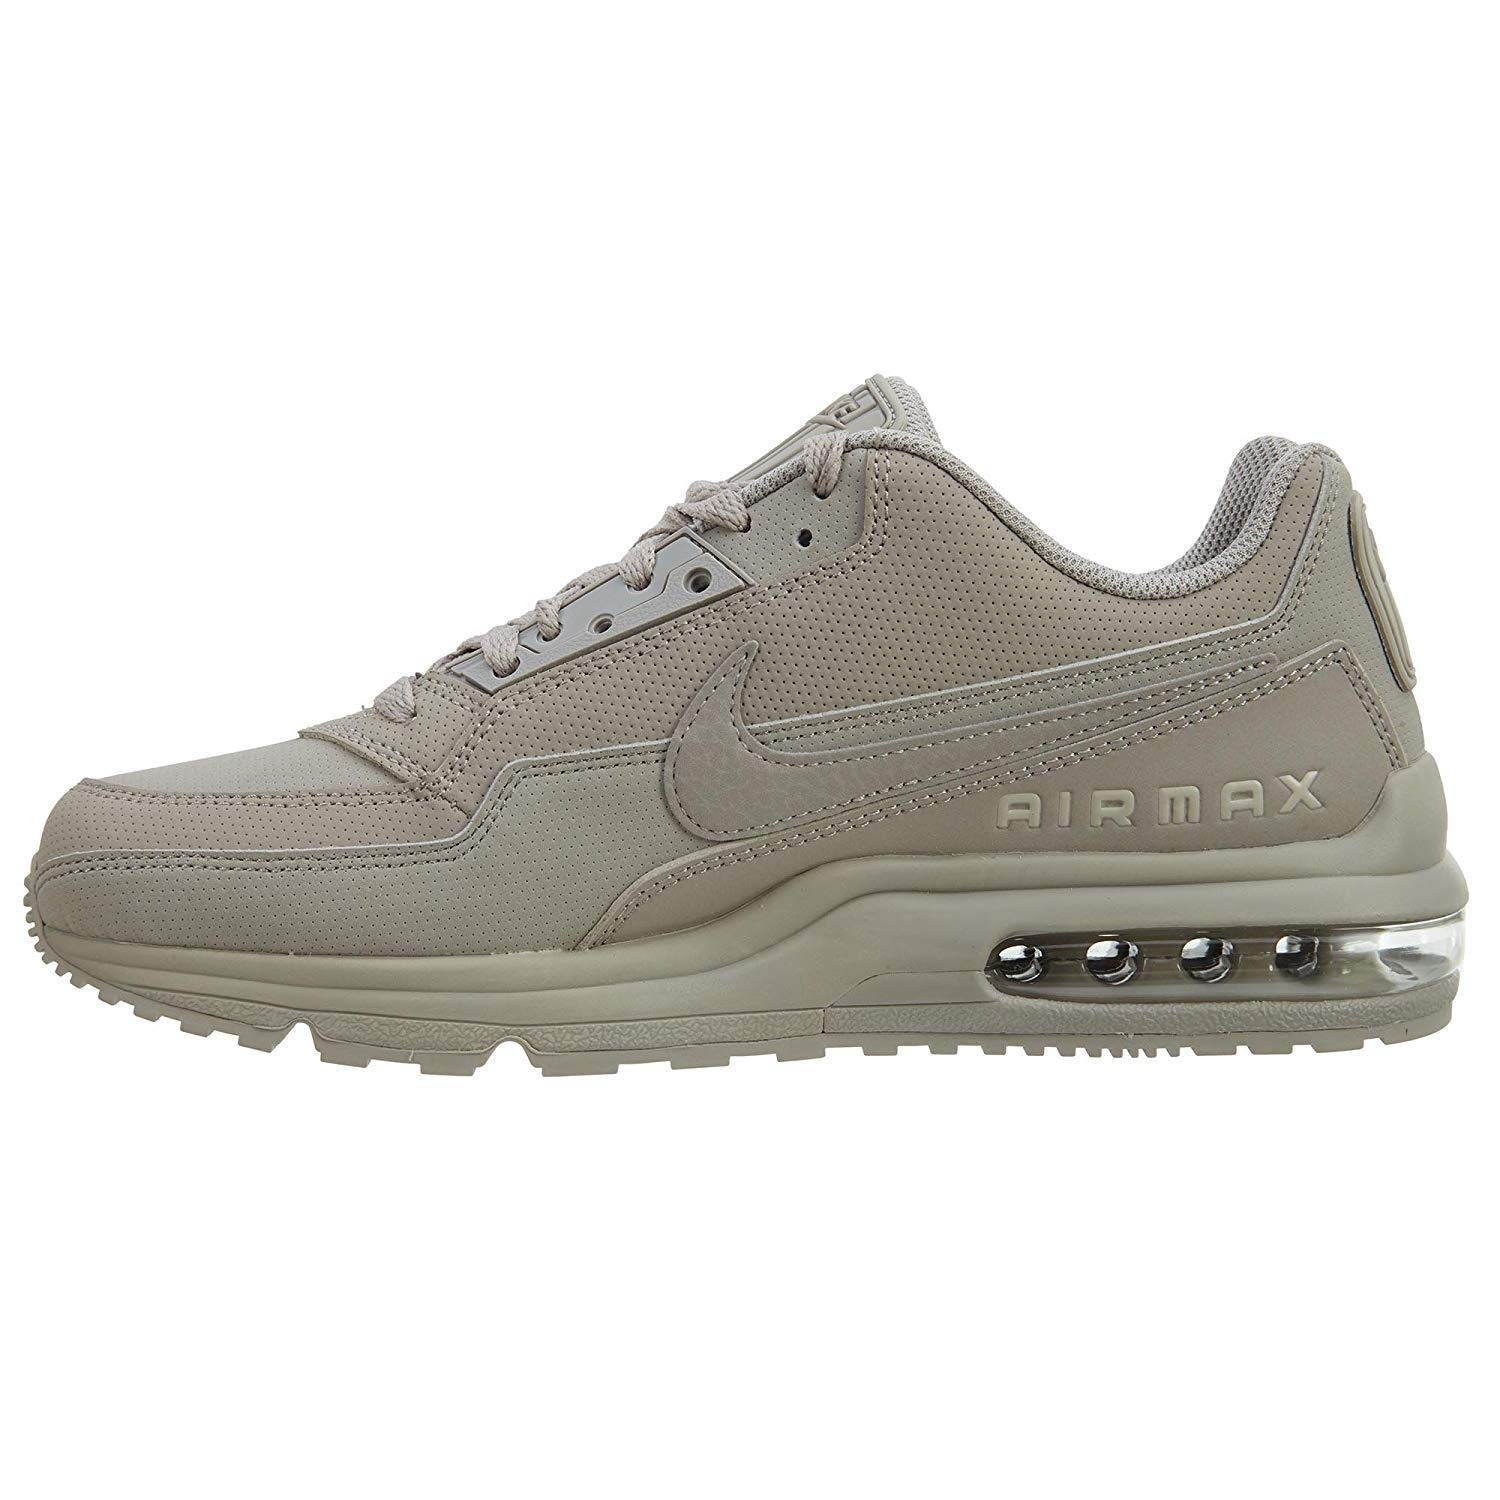 Galleon Nike Mens Air Max Ltd 3 Low Top Lace Up Running